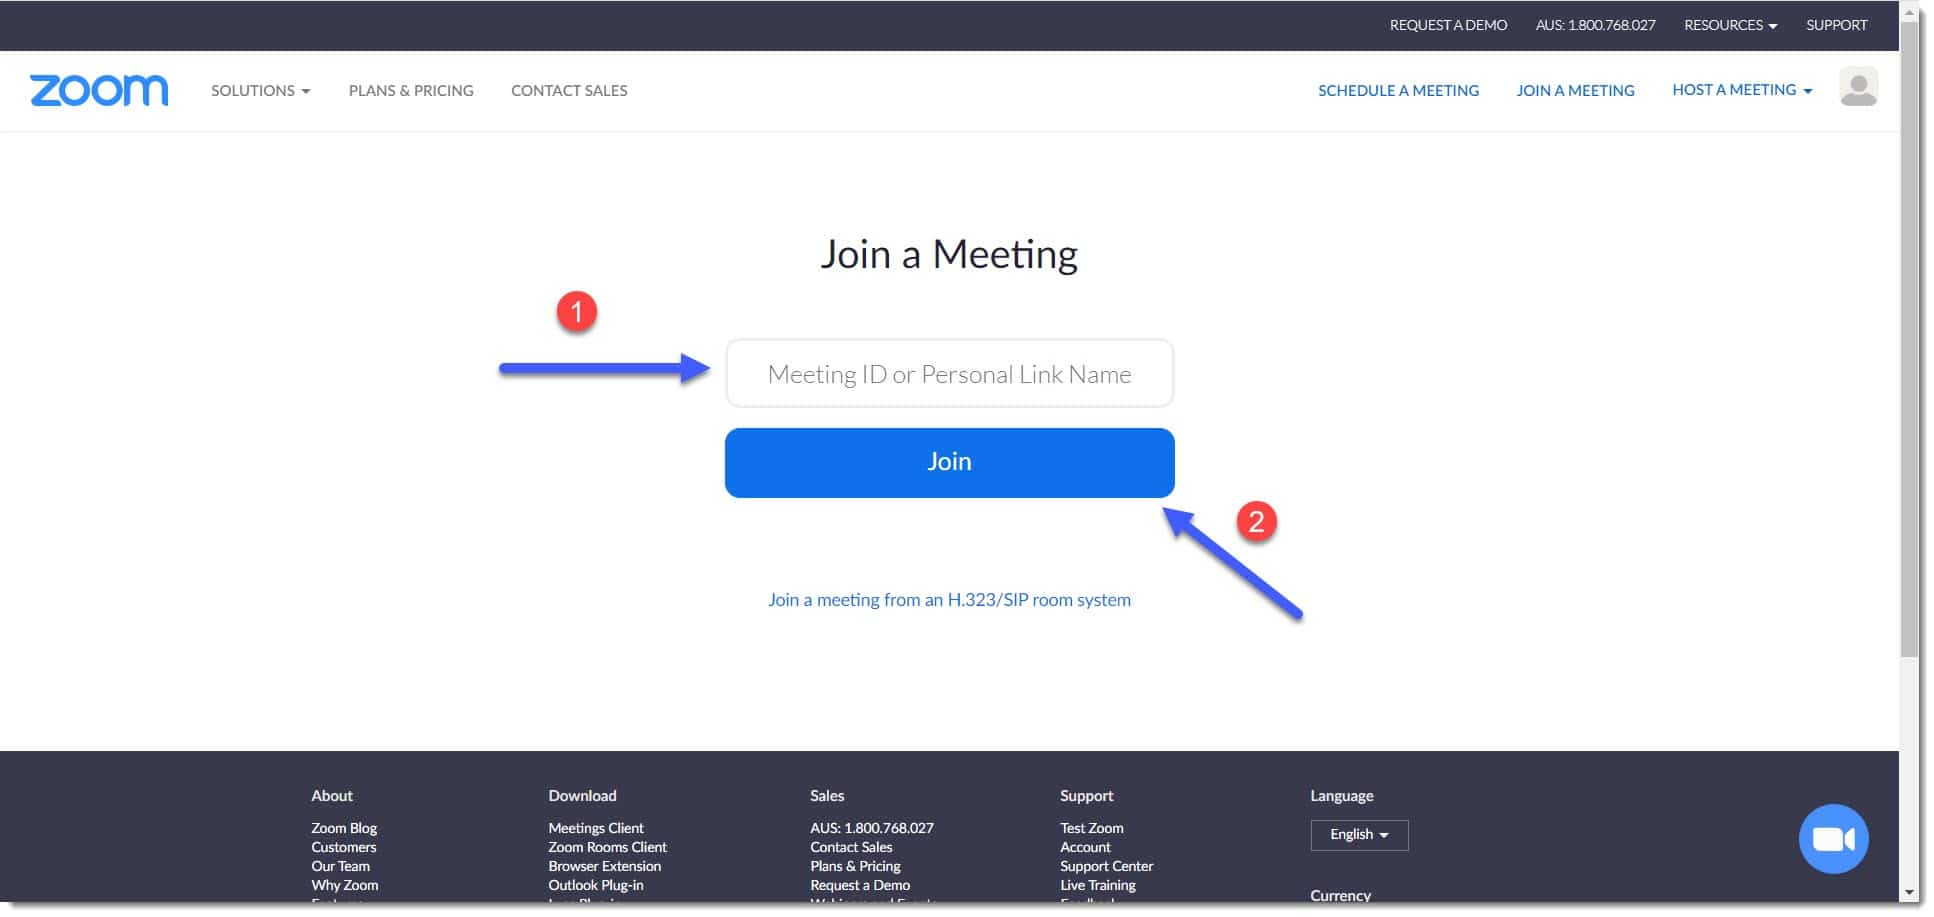 joining-a-zoom-meeting-using-the-meeting-id